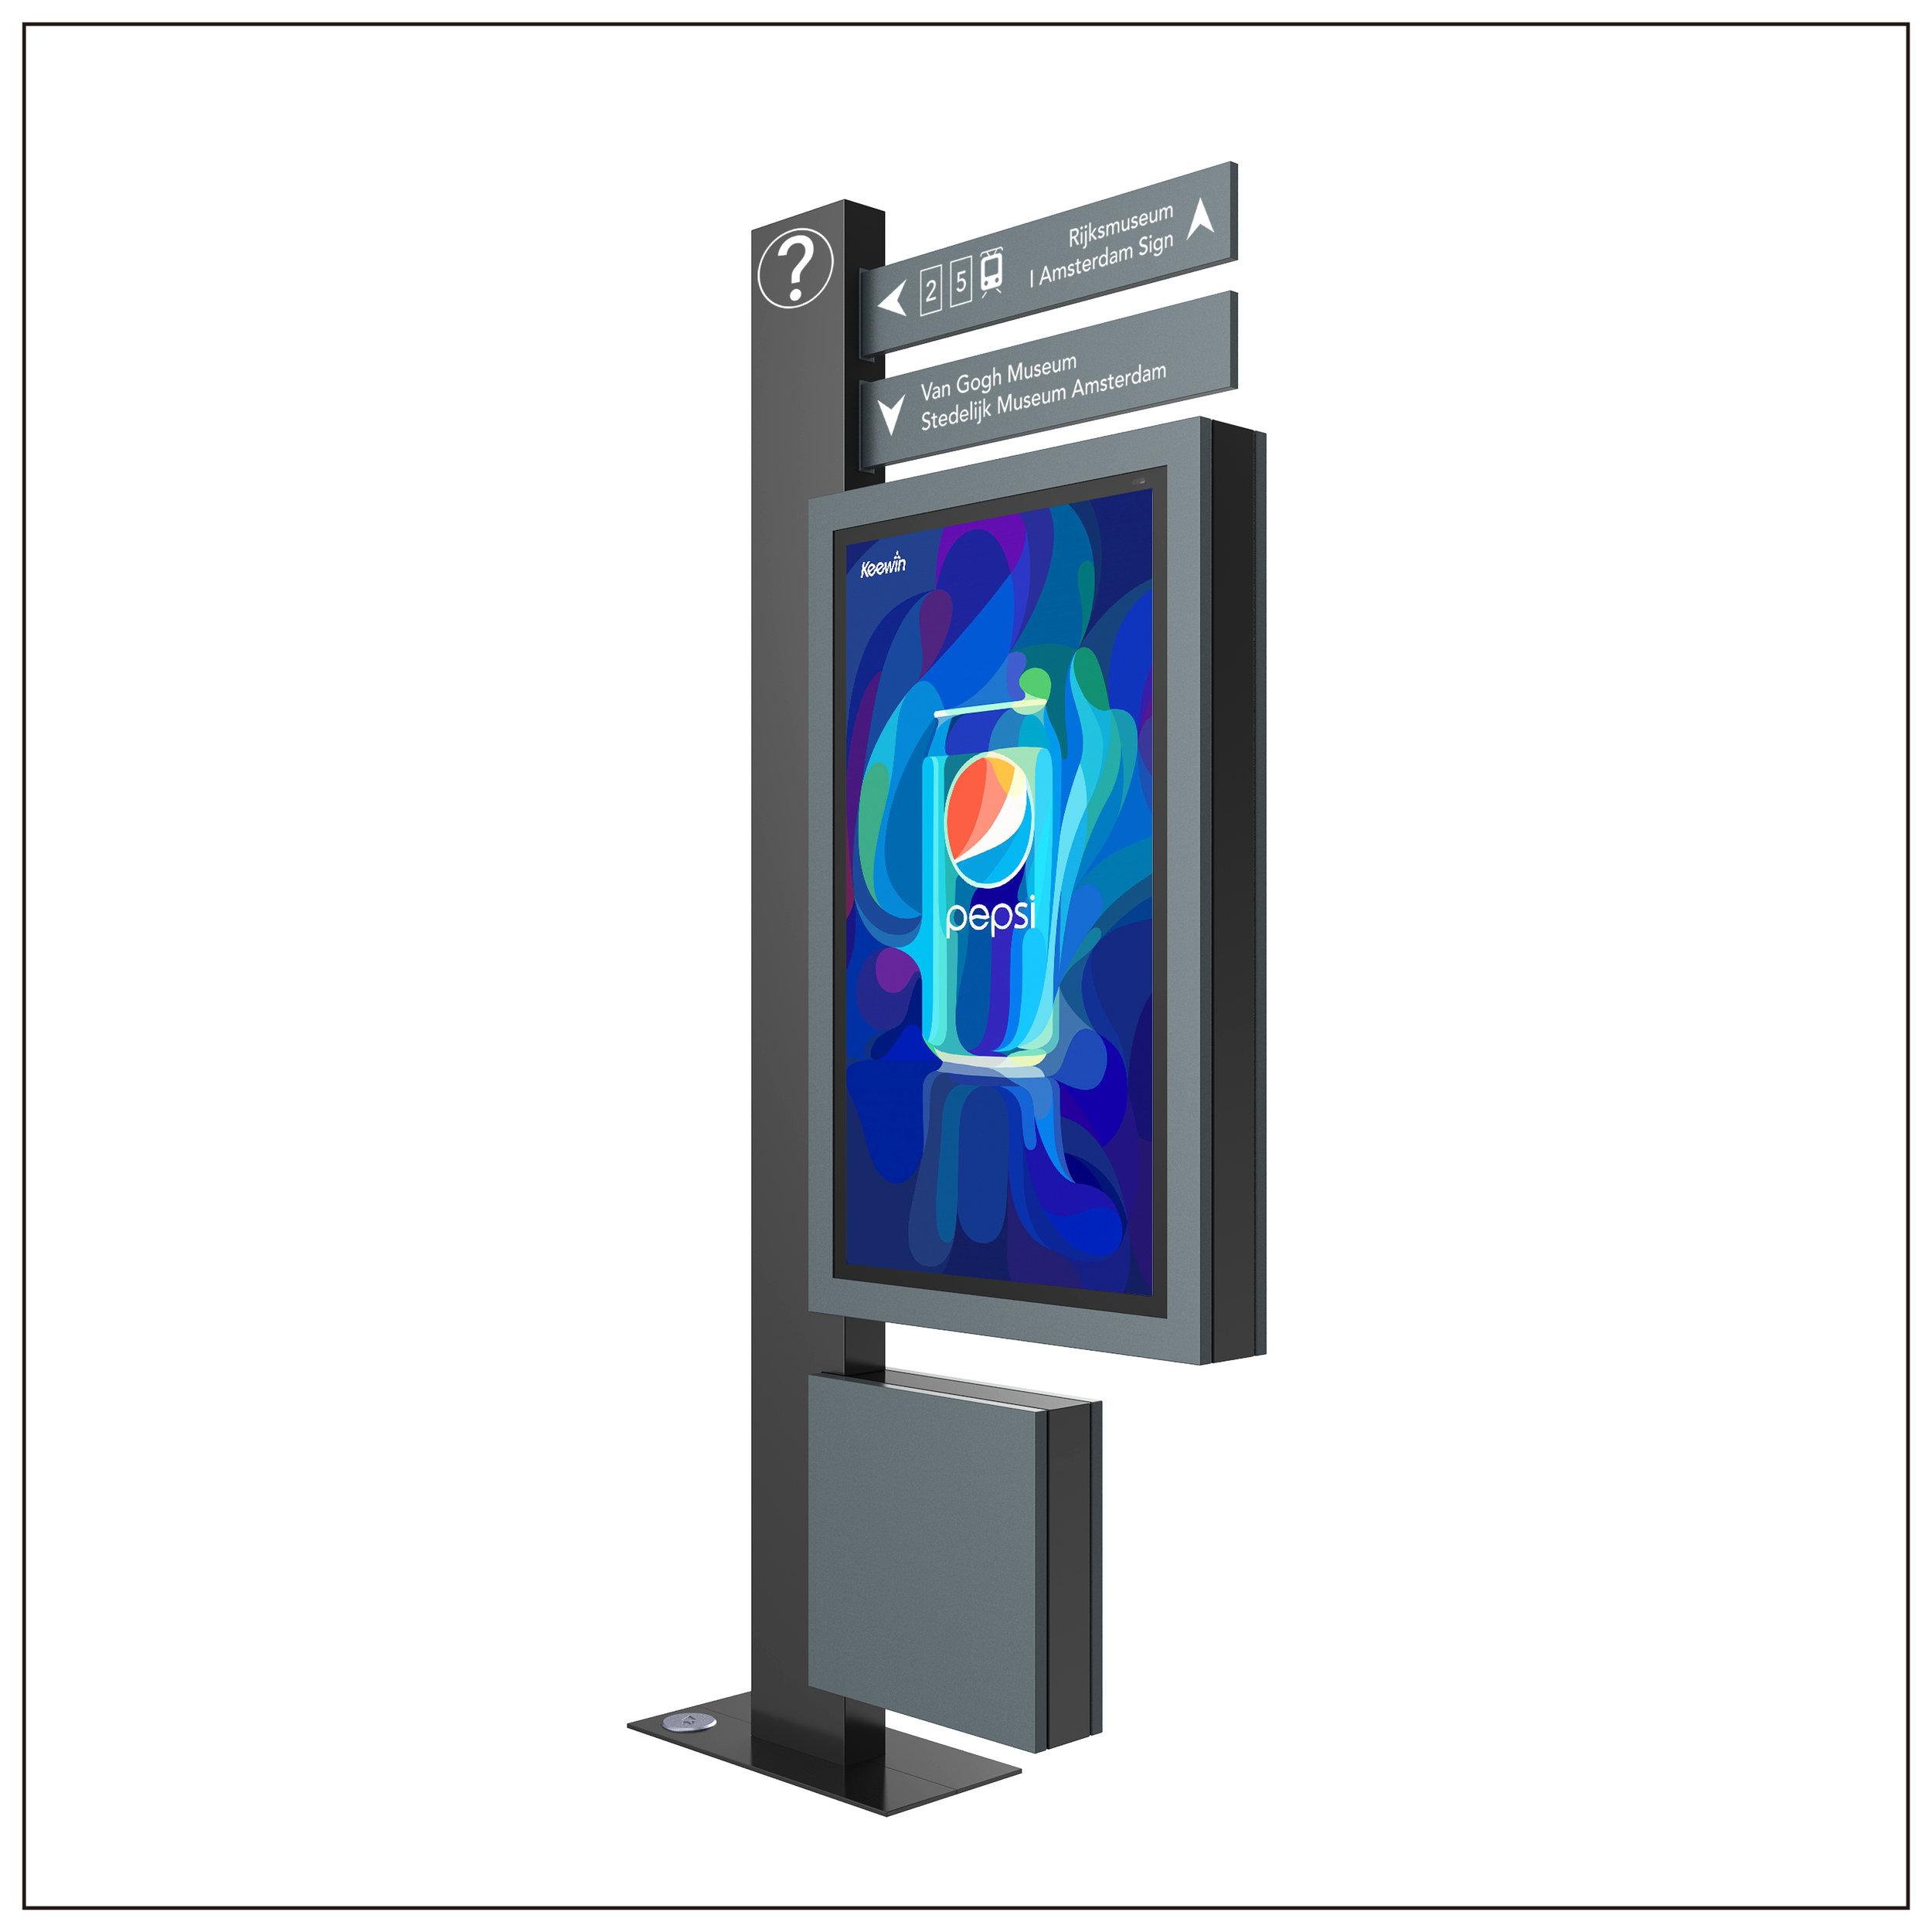 Wayfinding LCD Kiosk- Fully Enclosed System